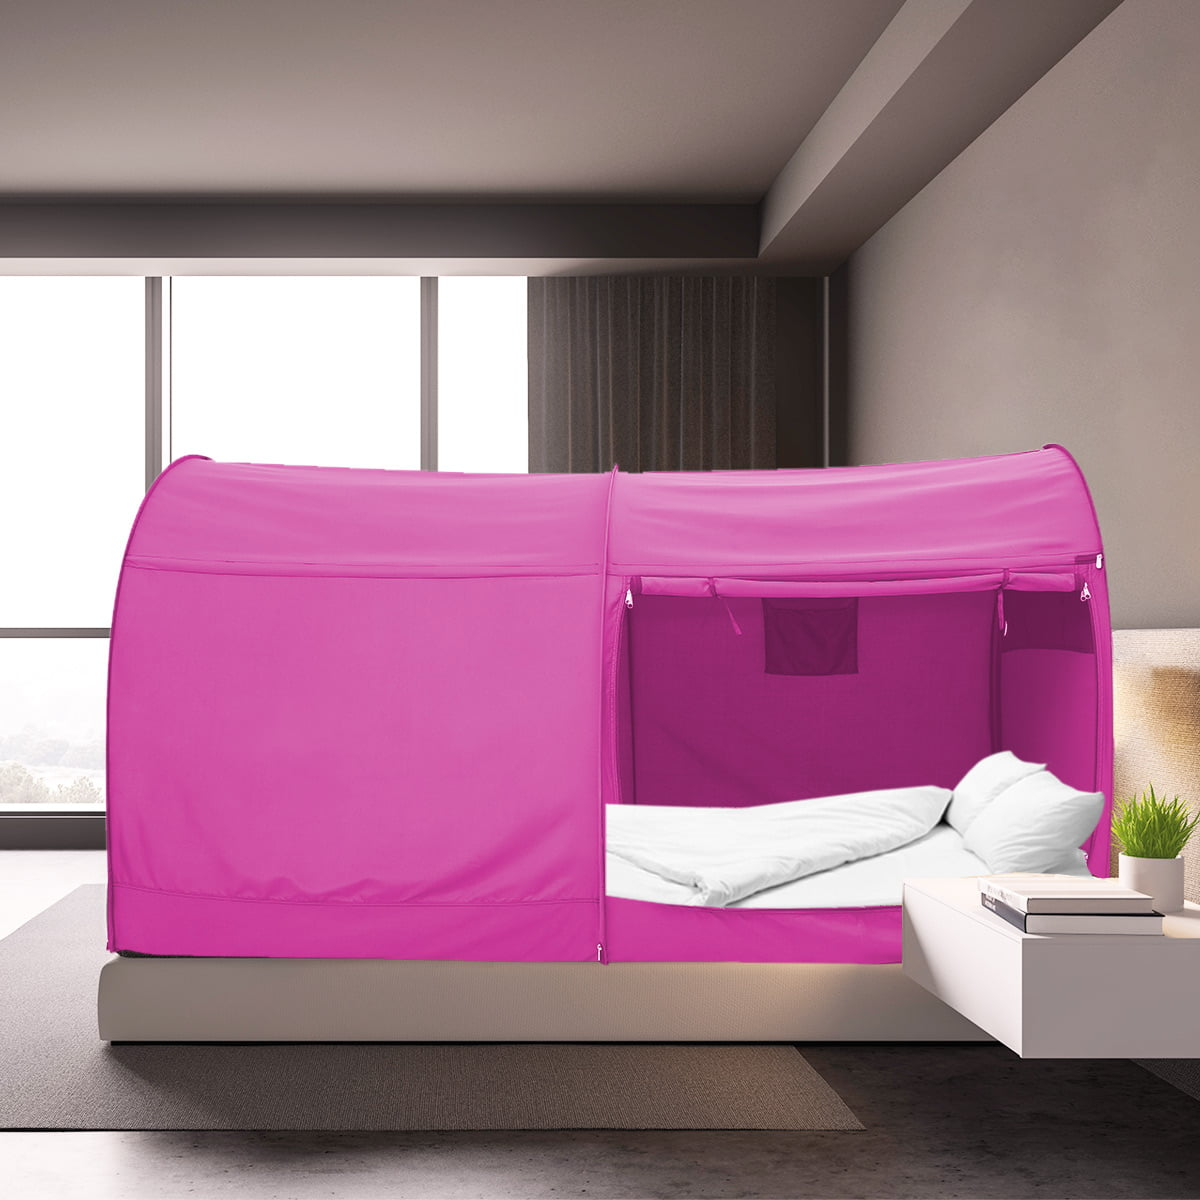 Bed Tent Full Size for Unisex Pink by Alvantor(Mattress ...